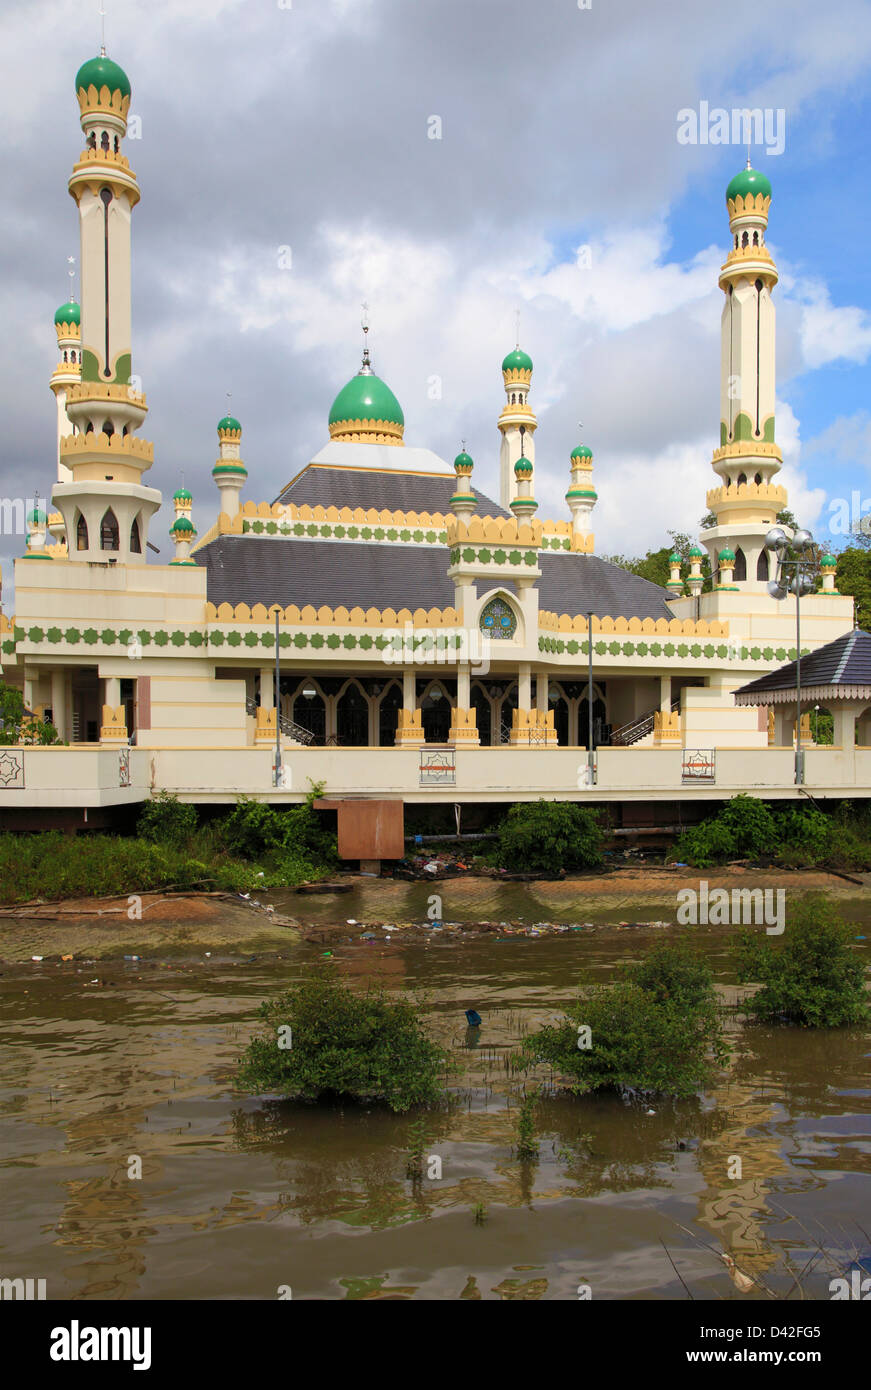 Brunei, Bandar Seri Begawan, Kampong Ayer, water village, mosque, - Stock Image